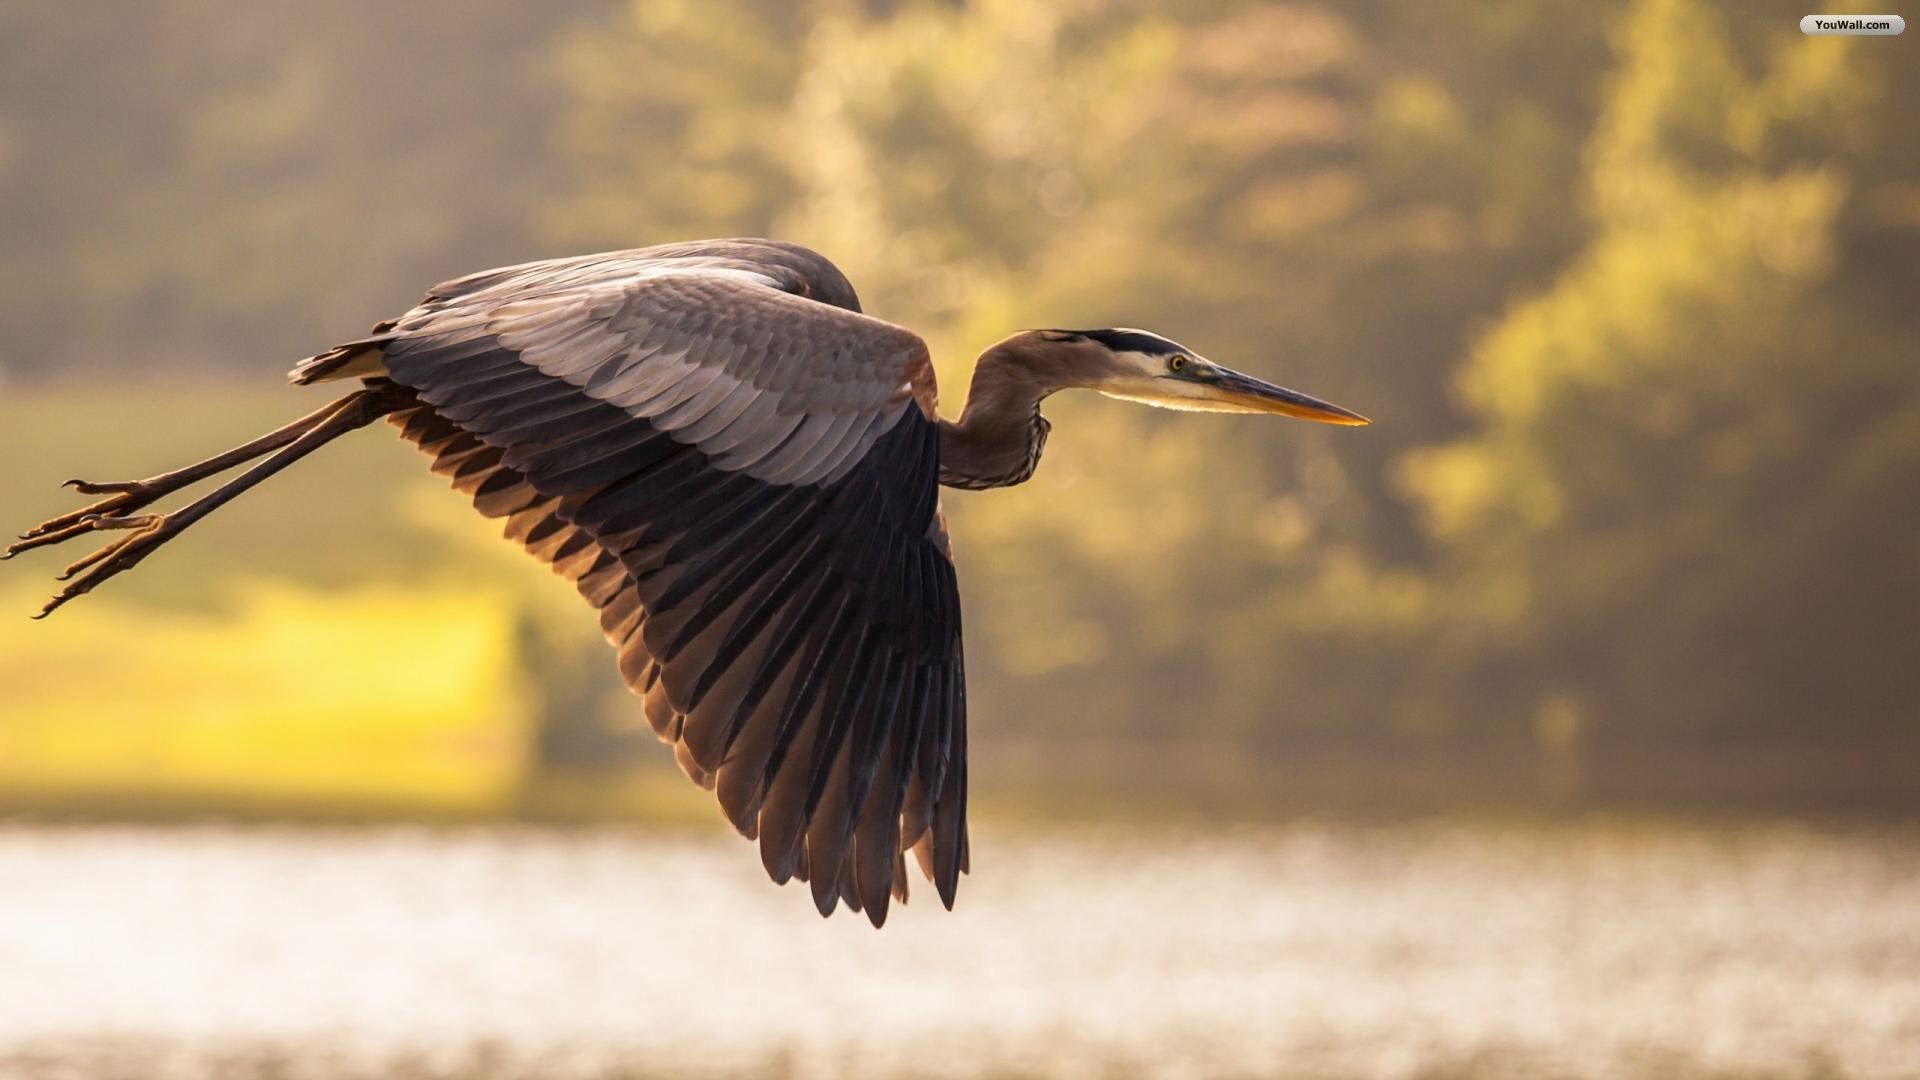 Related Wallpapers from Cute Owl Wallpaper. Flying Heron Wallpaper